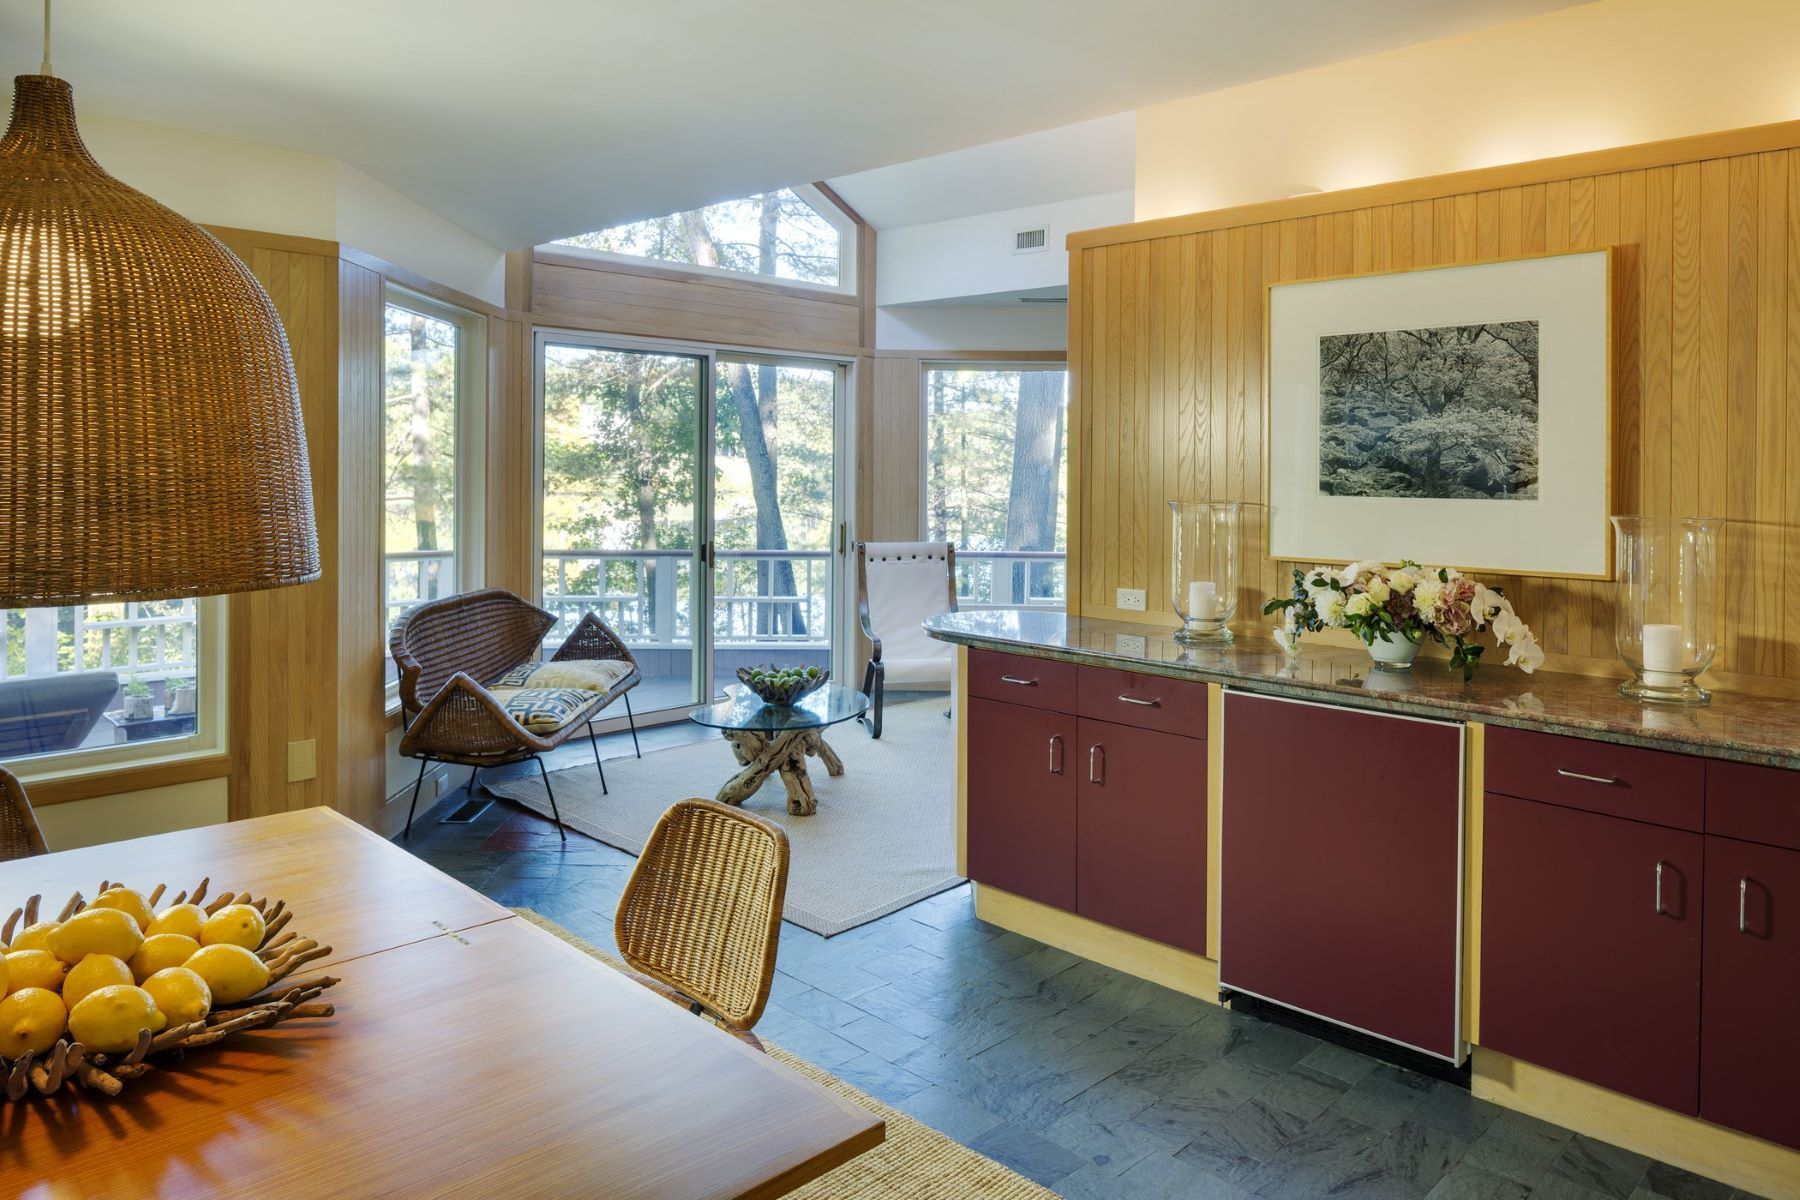 Additional photo for property listing at 360 Great Meadows Road, Concord 360 Great Meadows Rd Concord, Massachusetts 01742 United States